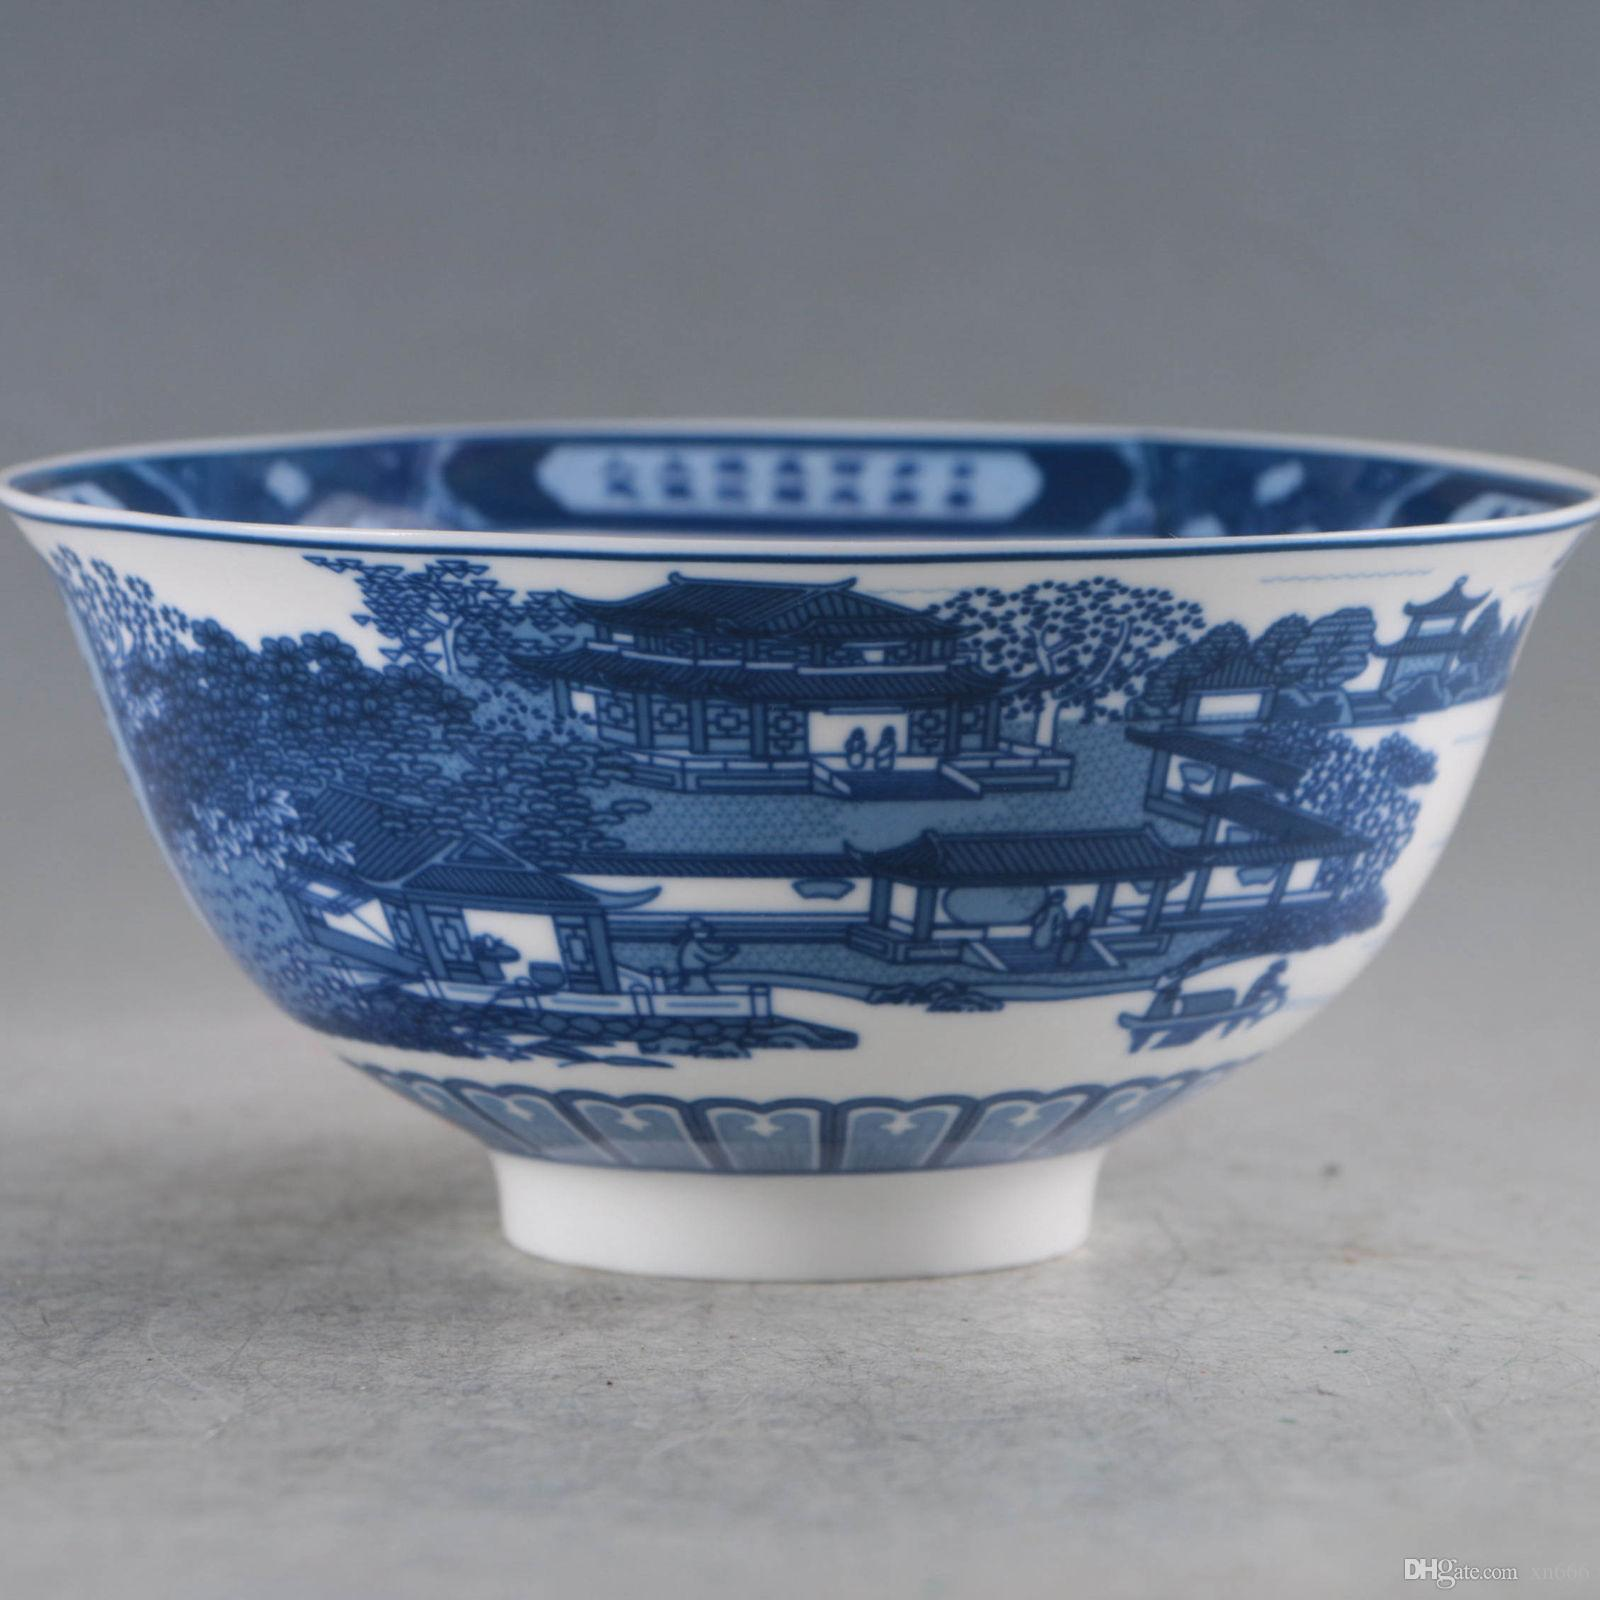 Chinese Porcelain Handmade Bowls Made During The DaQing Qianlong Period